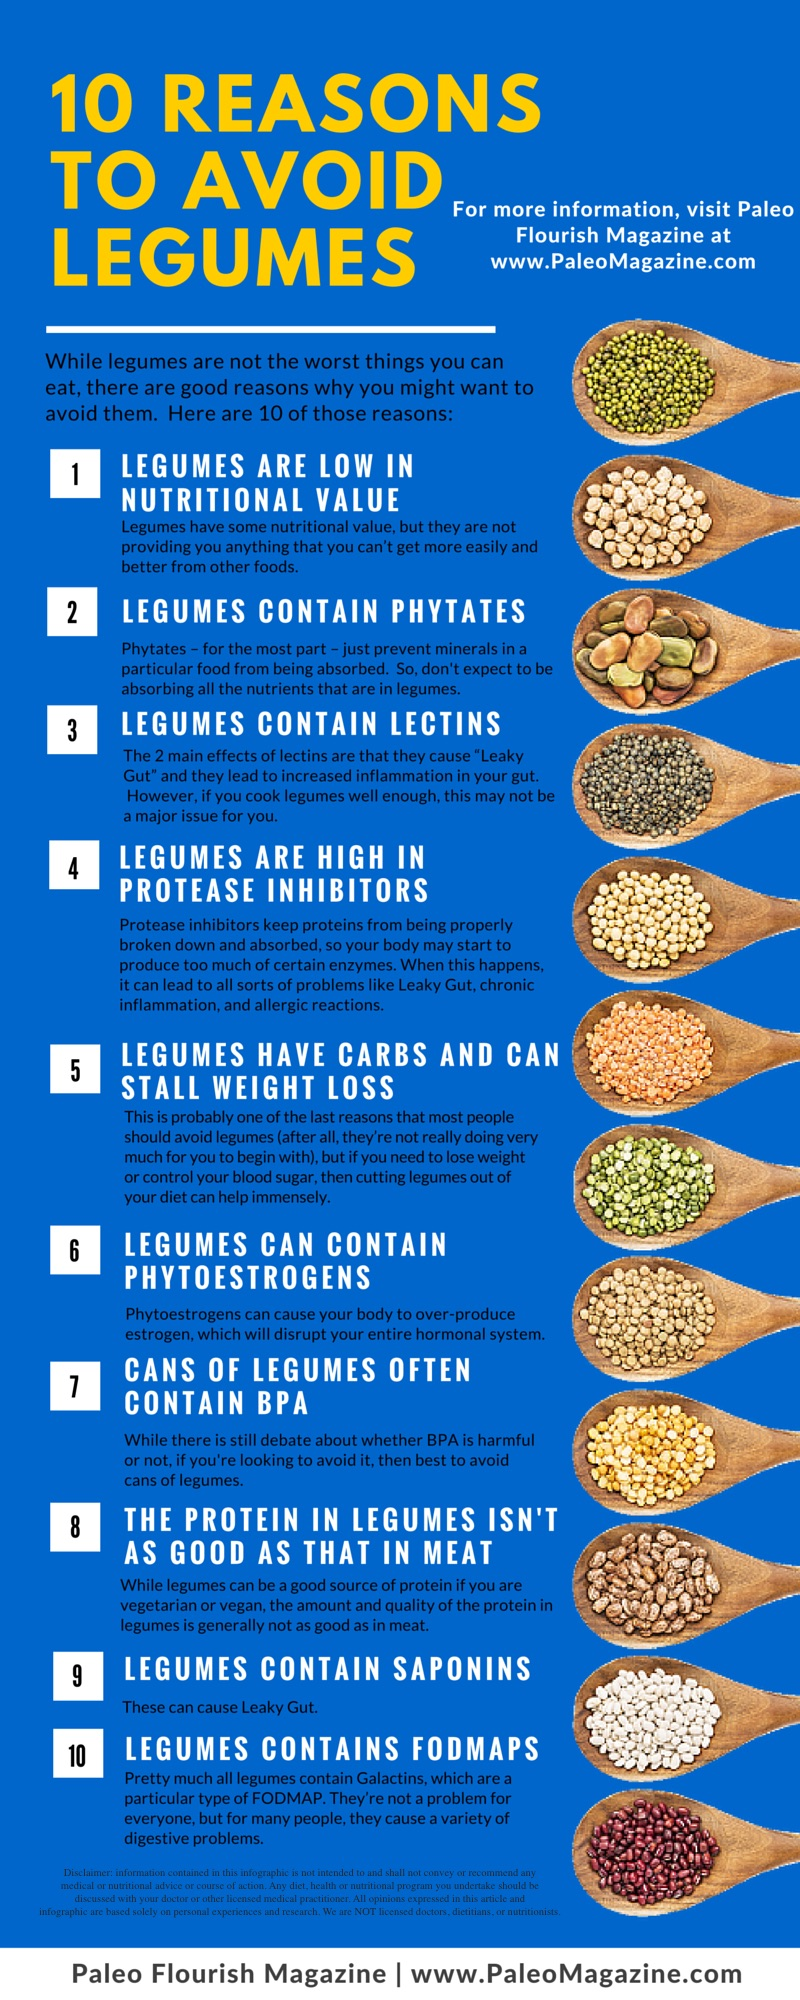 10 Reasons To Avoid Legumes - Paleo Diet https://paleoflourish.com/paleo-why-legumes-are-bad